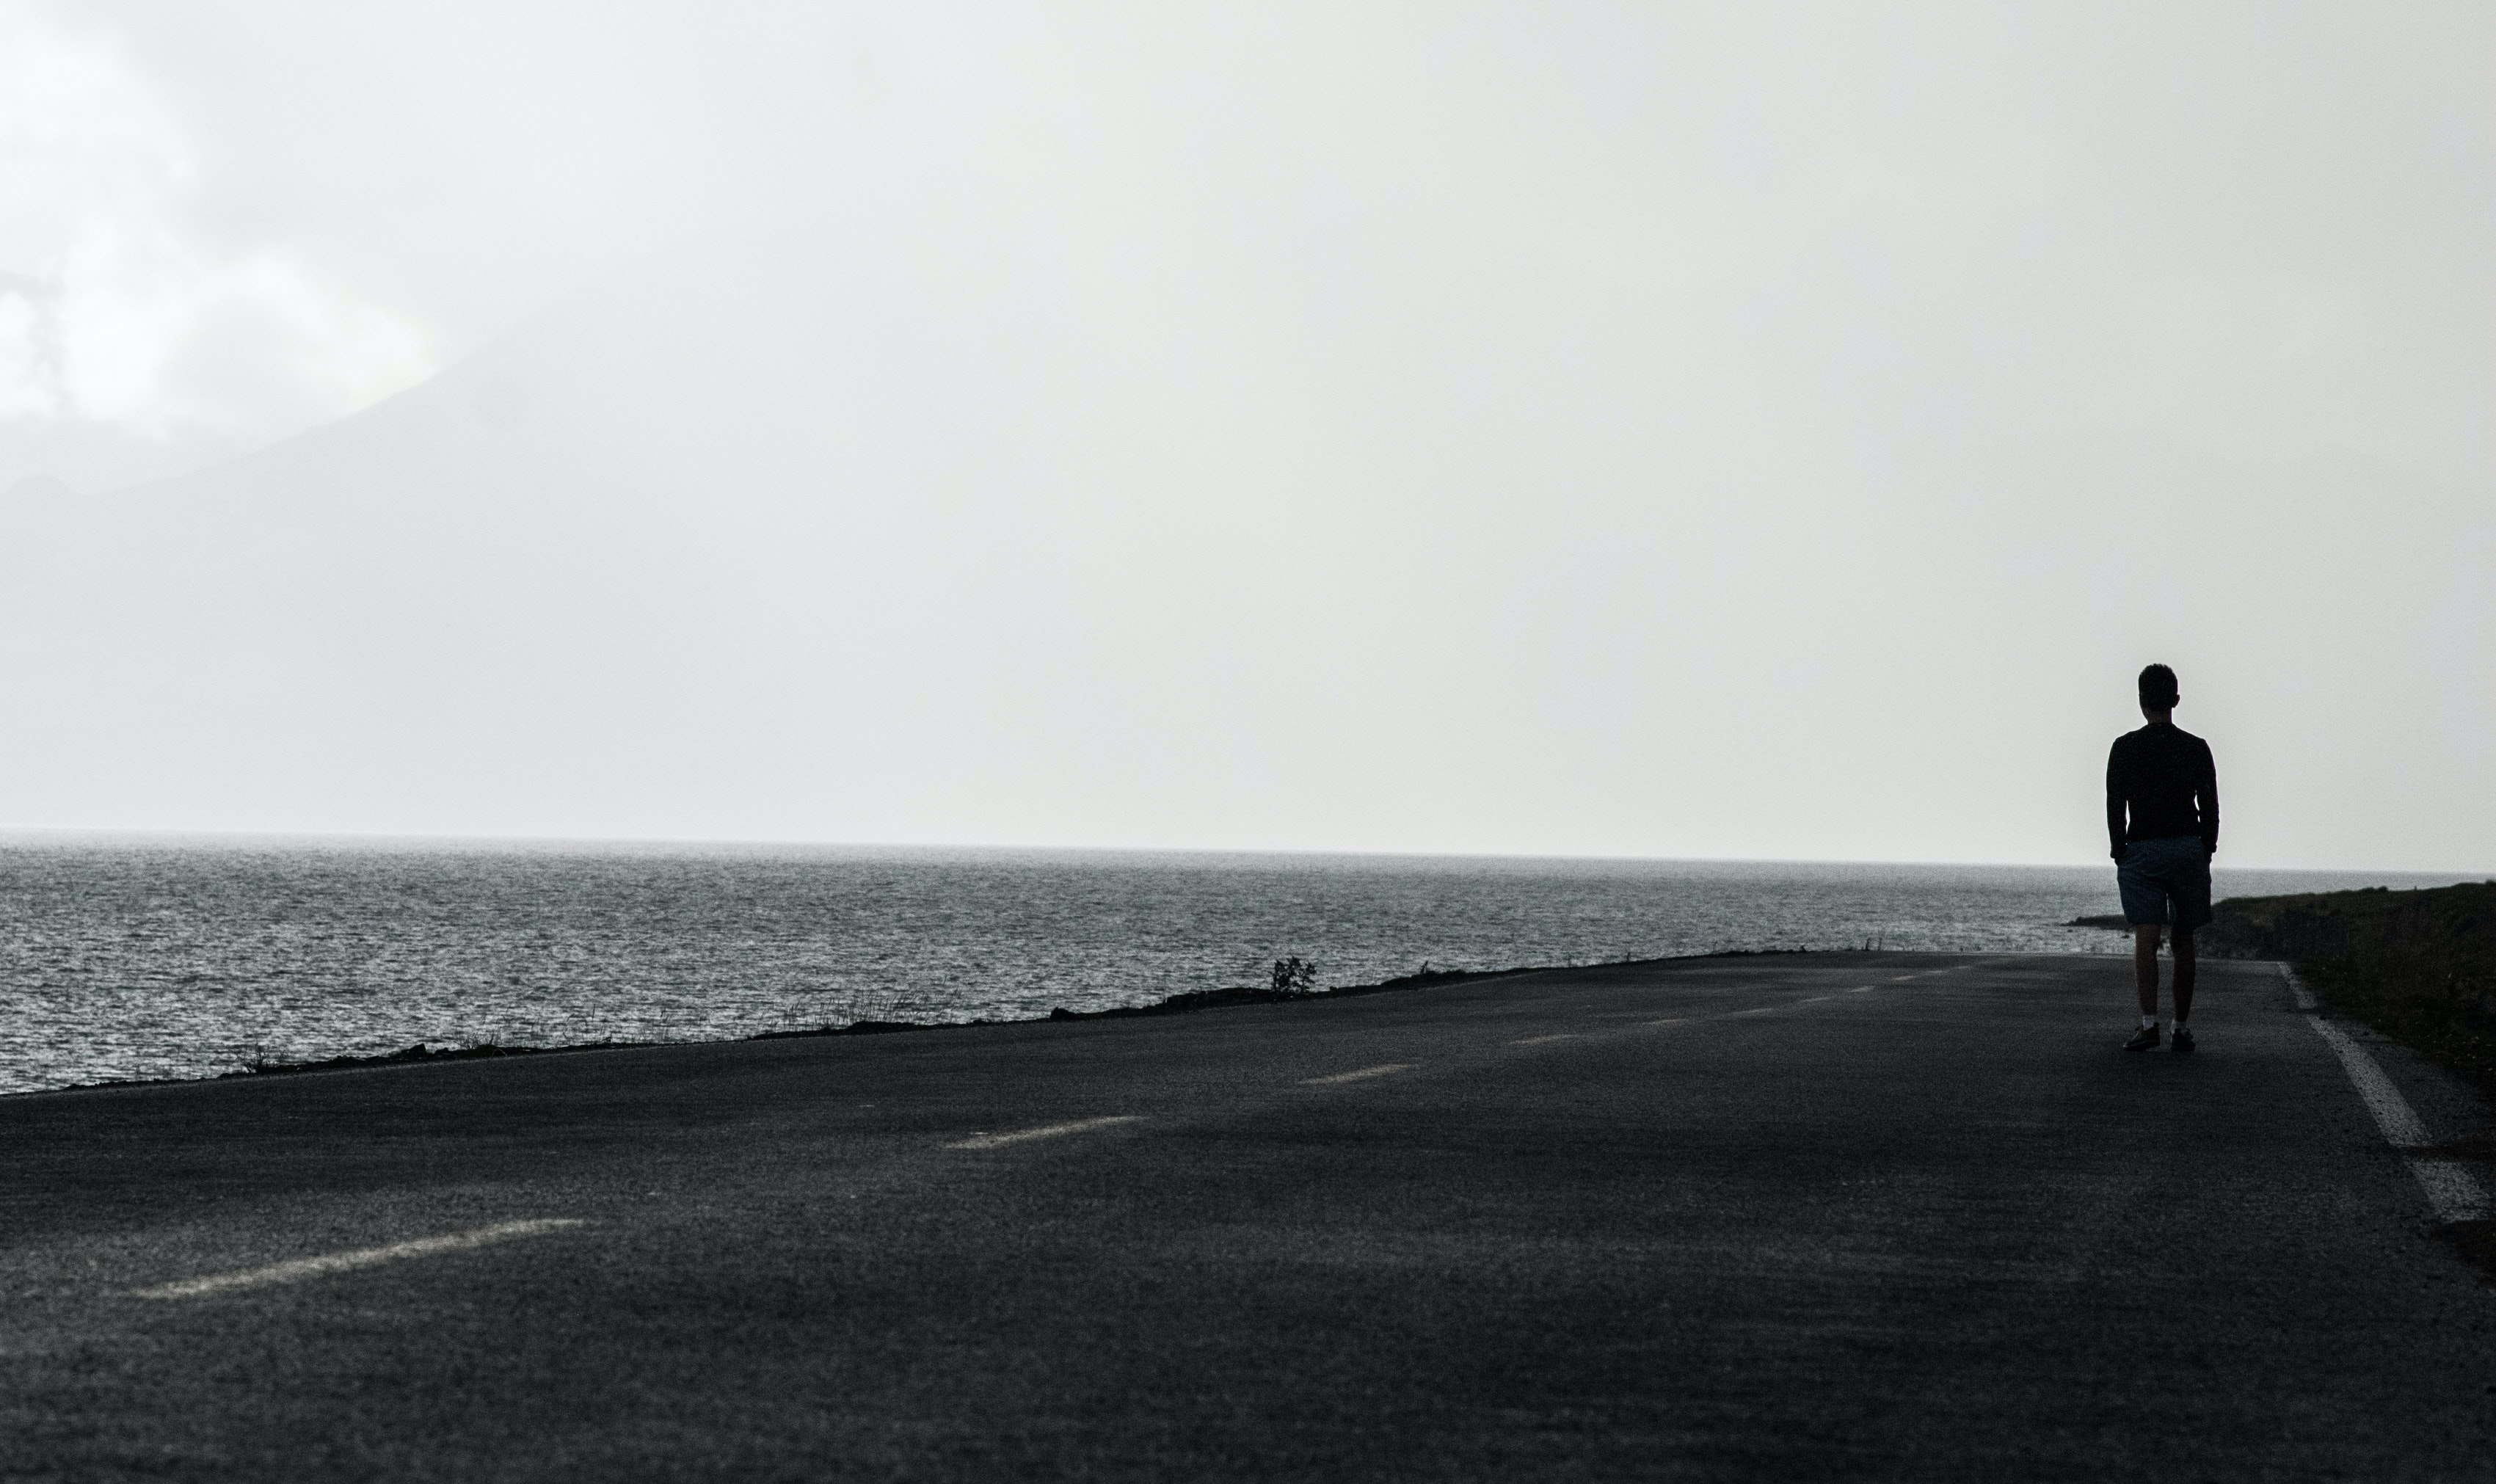 man standing on asphalt road beside body of water under gray sky